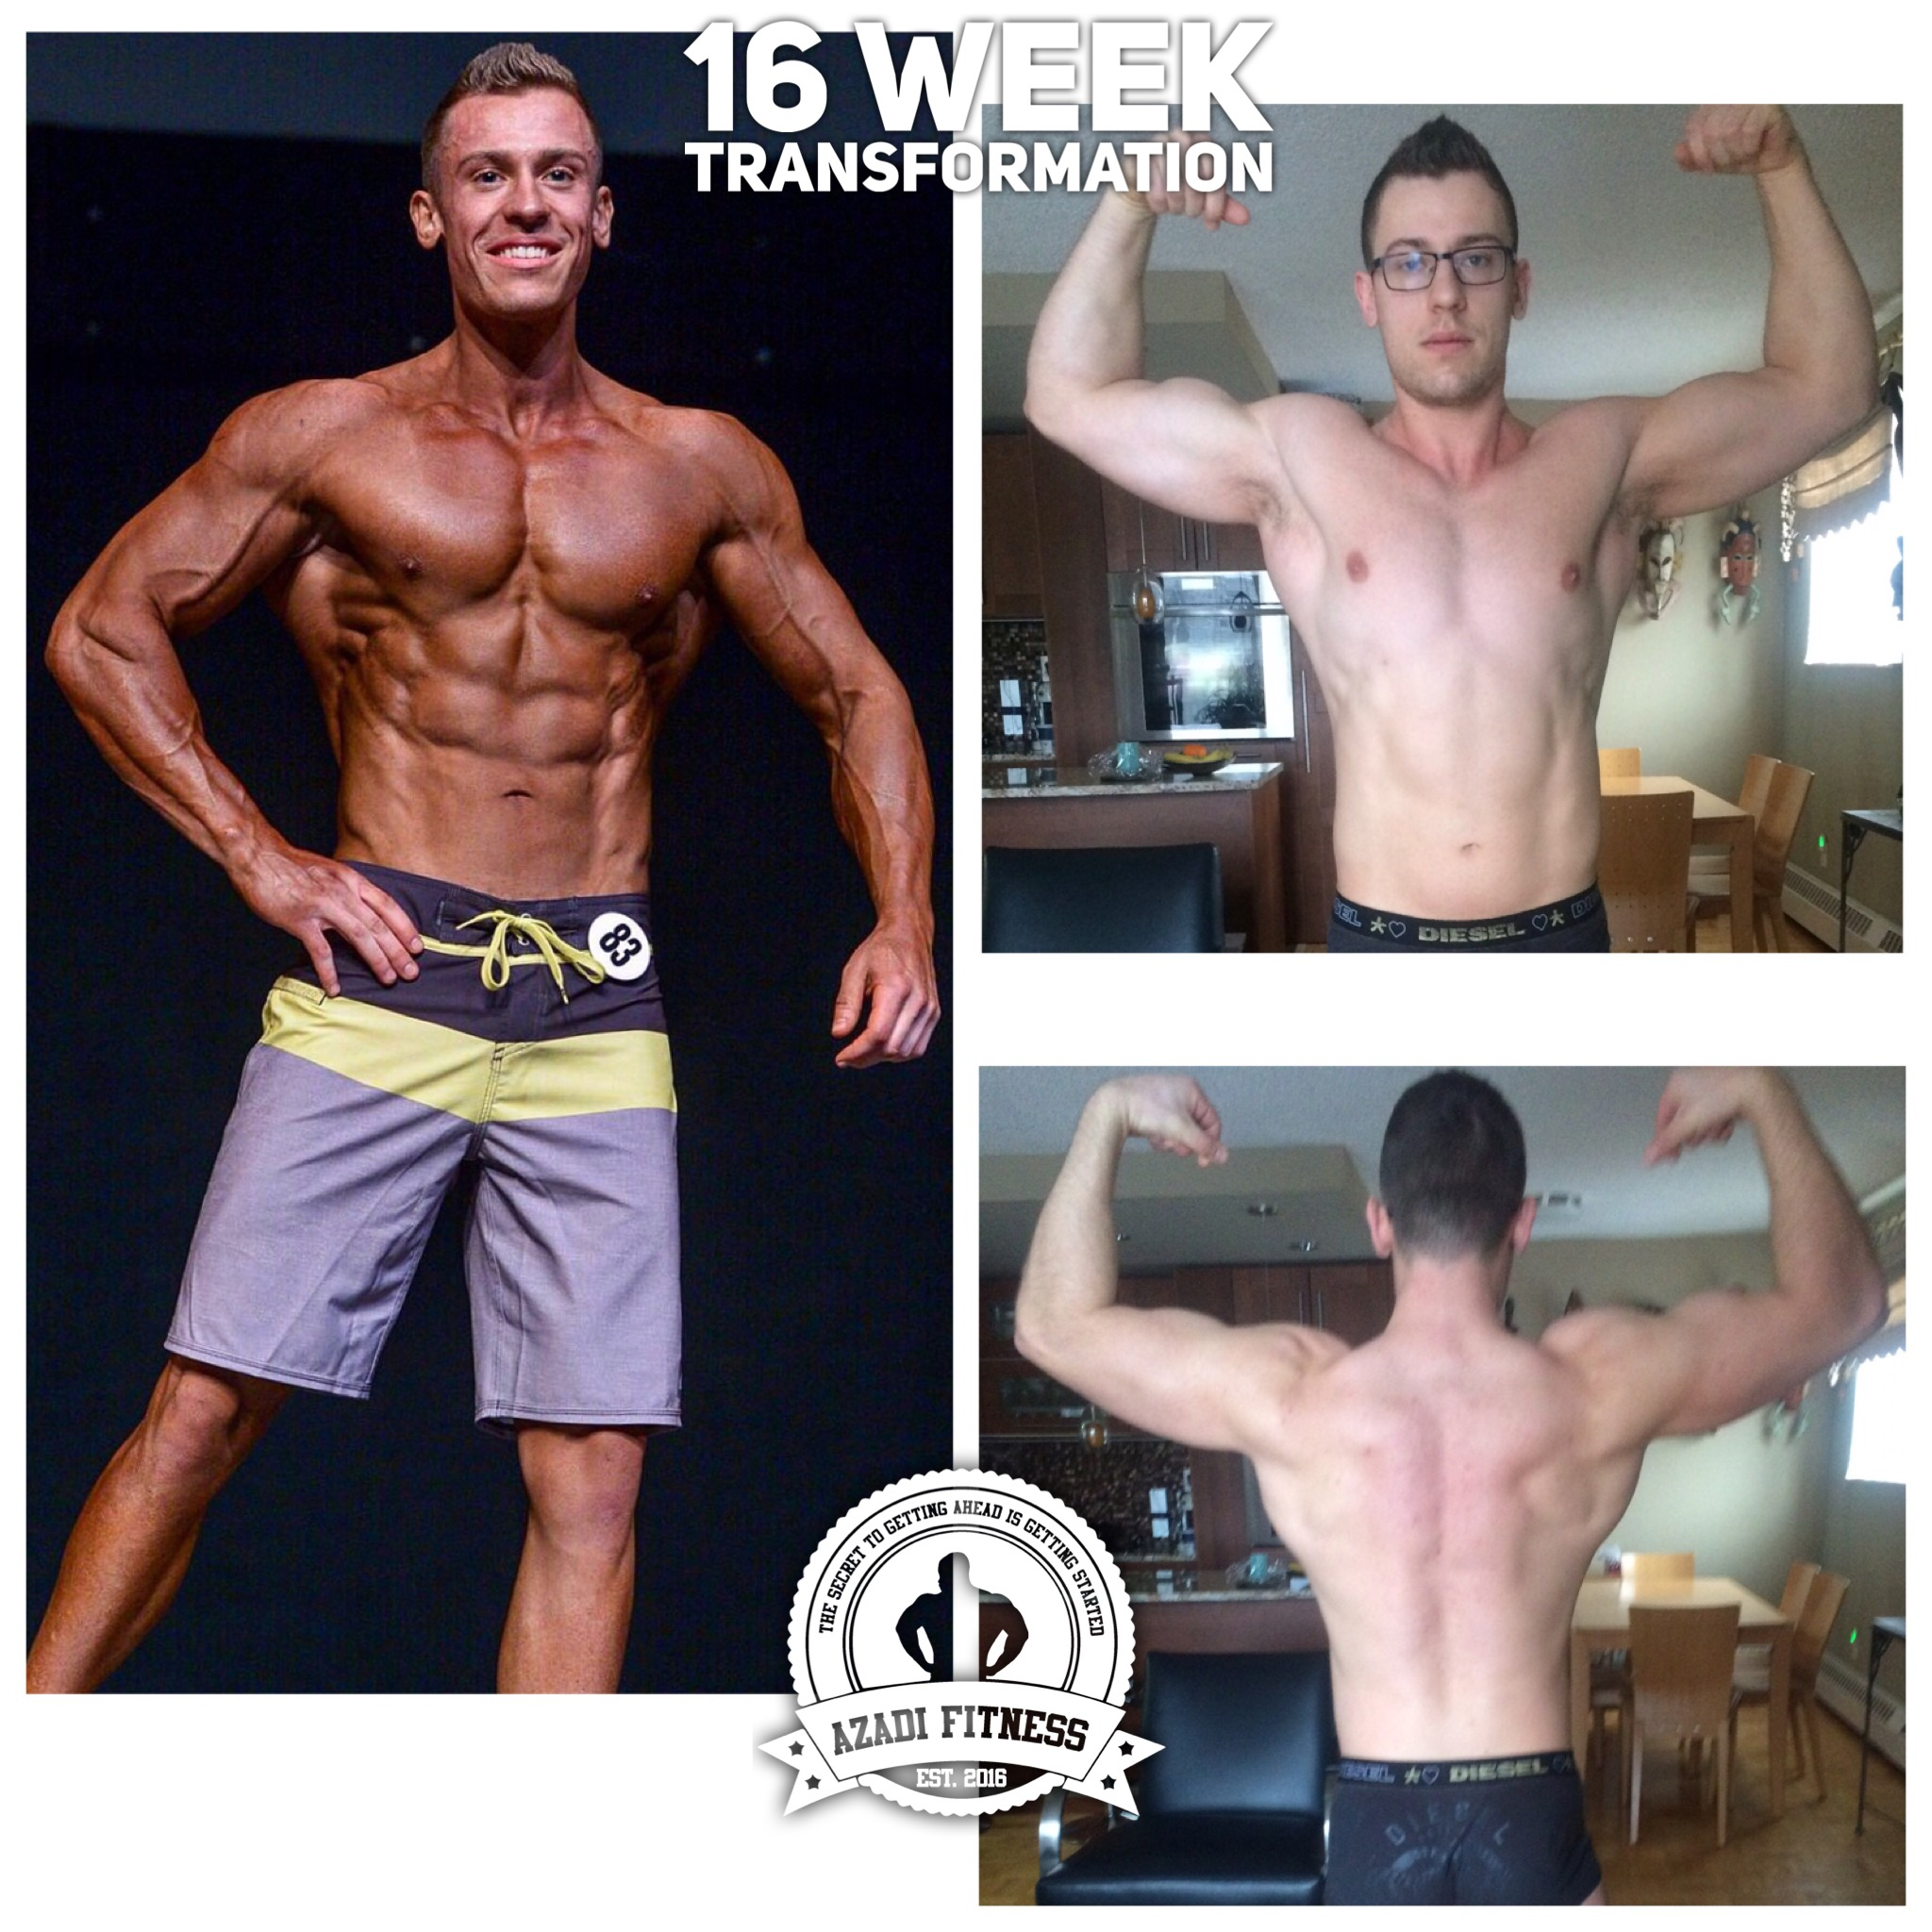 """Being coached by Sina for my 16 week contest prep has been nothing but a pleasure and vast learning experience for me. As a result of working with Sina, I received 1st place in the ABBA Southerns show which qualified me to become a provincial level competitor. He has so much knowledge about how proper training and nutrition caters to each persons body individually. You can be sure that what you get with Sina is not just a cookie cutter plan, but a plan that gets continuously updated towards your specific needs in order to achieve your goals. This resulted in me putting on solid muscle mass while becoming leaner leading up into my show. I have learned so much more about training and nutrition, as well as about how my body responds to changes in these two things, which I can now apply myself. I look forward to working with Sina again as I prepare for provincials in order to bring an even better physique and further develop my knowledge around the sport! If you're looking for a prep coach or someone to help turn your life around, you've arrived at the right place.""   -Konrad Witek, June 2017"